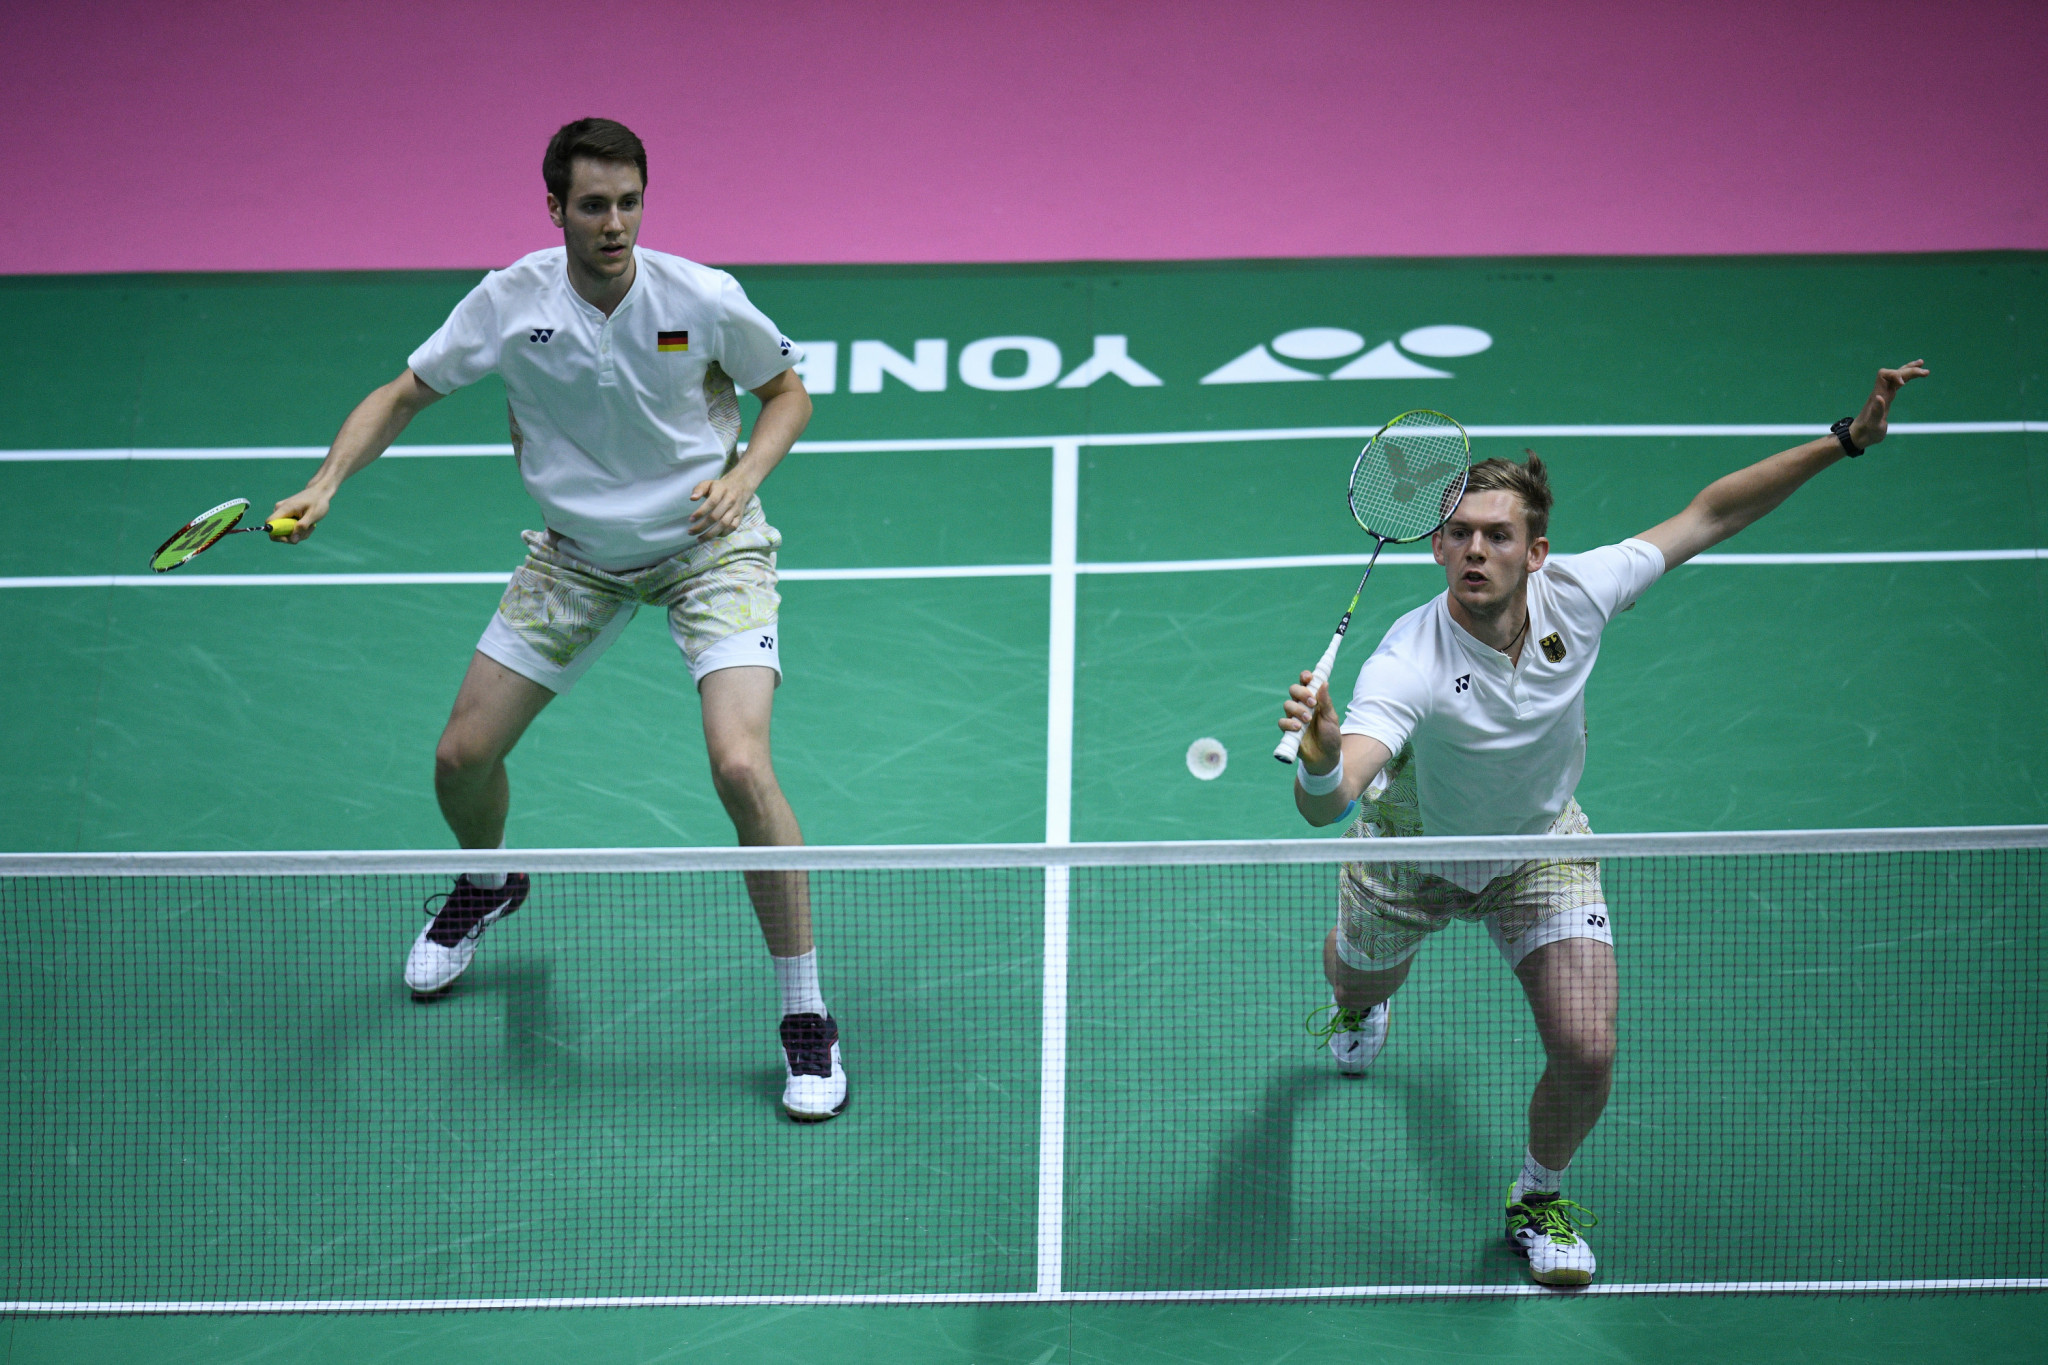 Germany to face Denmark in European Mixed Team Badminton Championships final after shock win over Russia